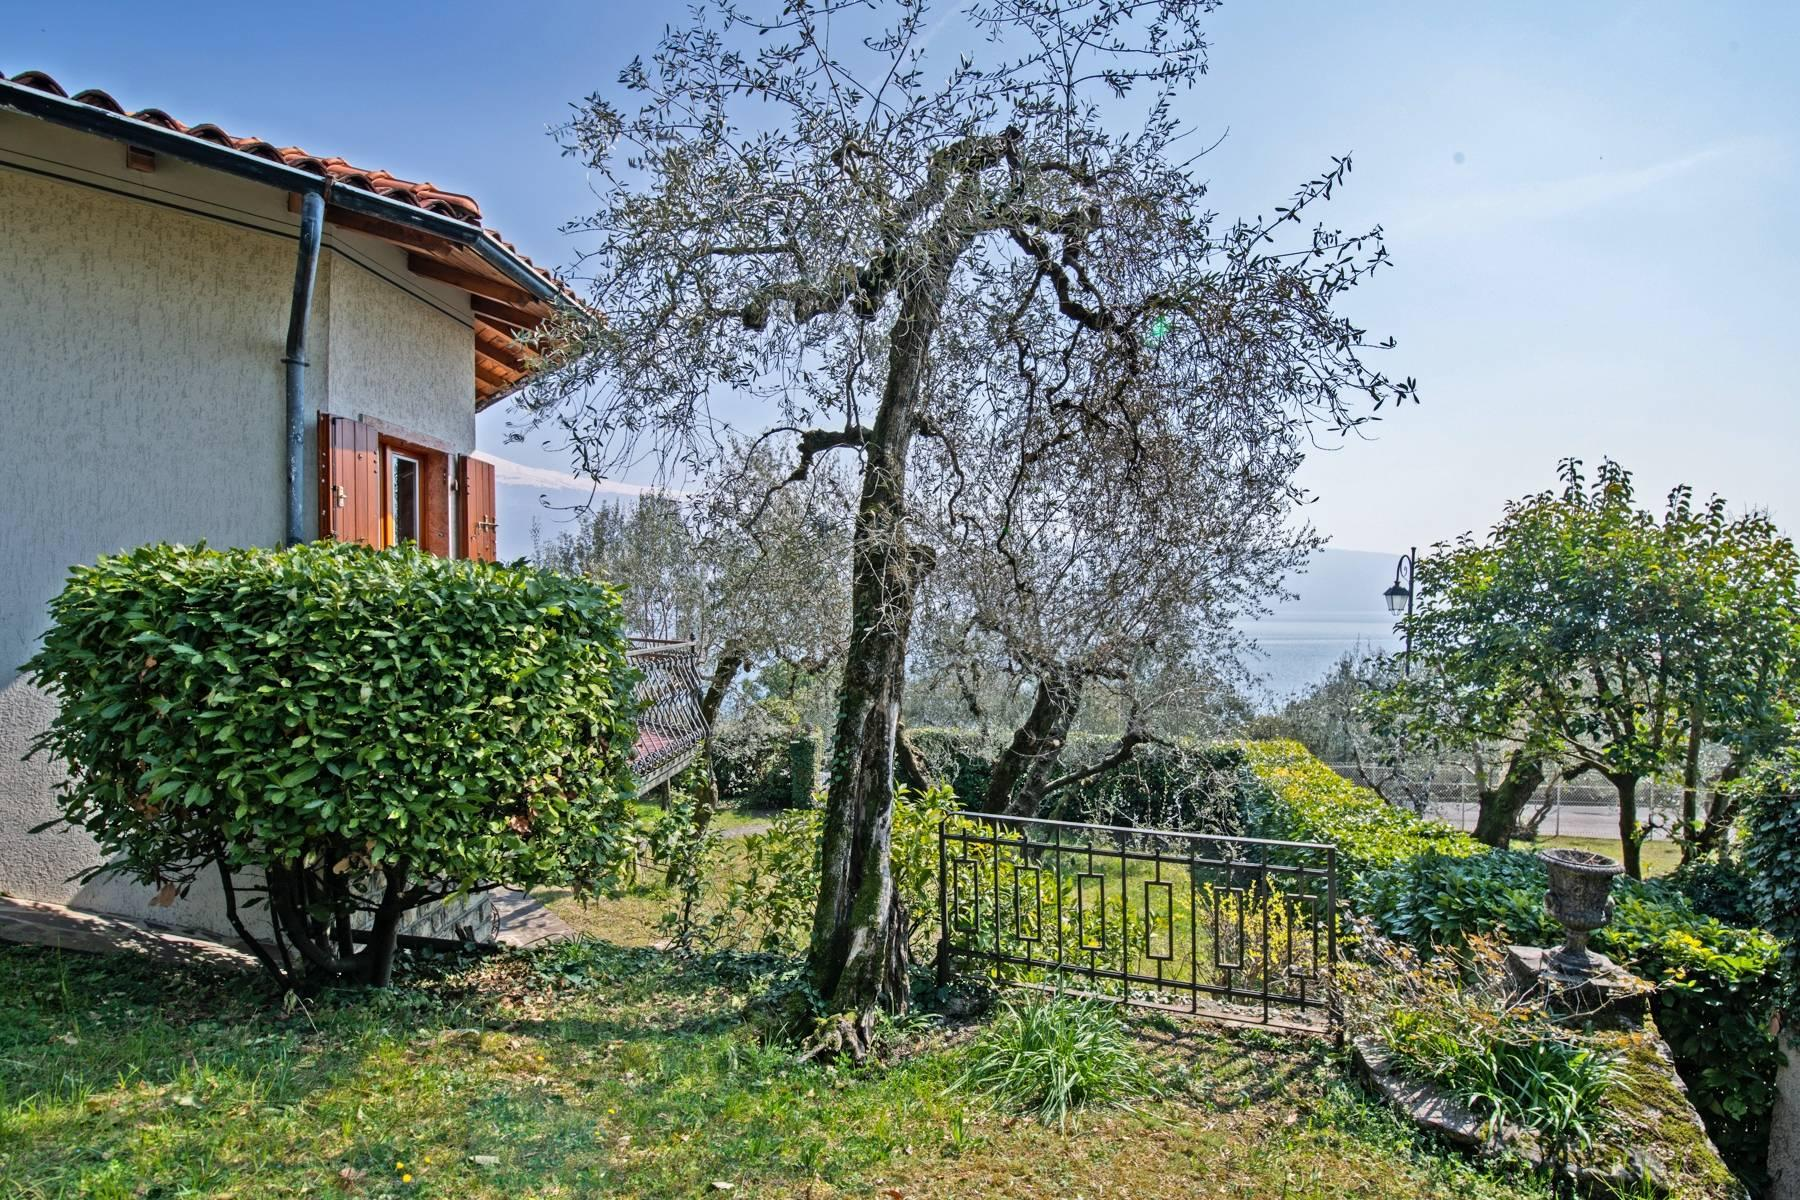 Villa with lake view in Gargnano surrounded by olive trees - 29